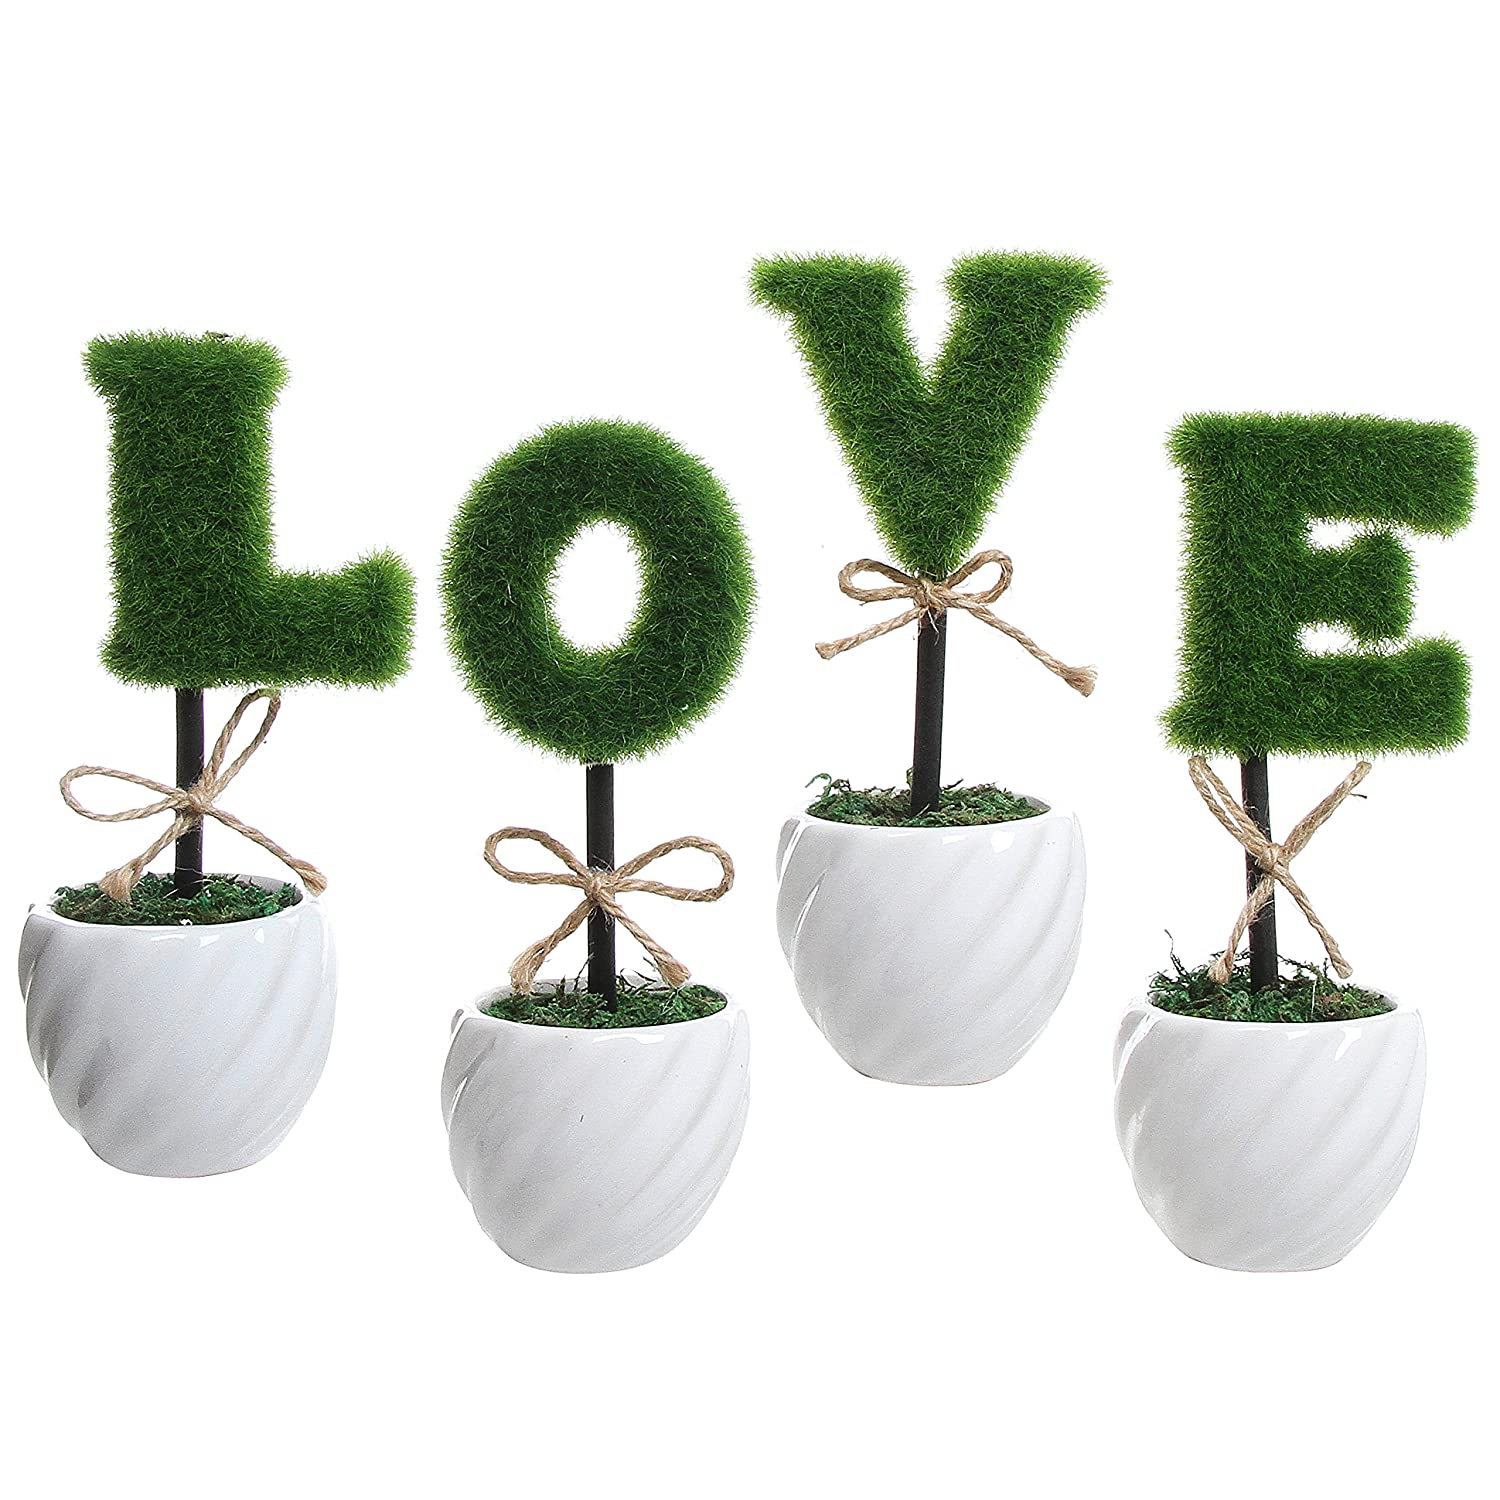 MyGift LOVE Artificial Sculpted Topiary Set, Decorative Faux Hedge Letters with Red Ceramic Pots TB-DECO0311RED